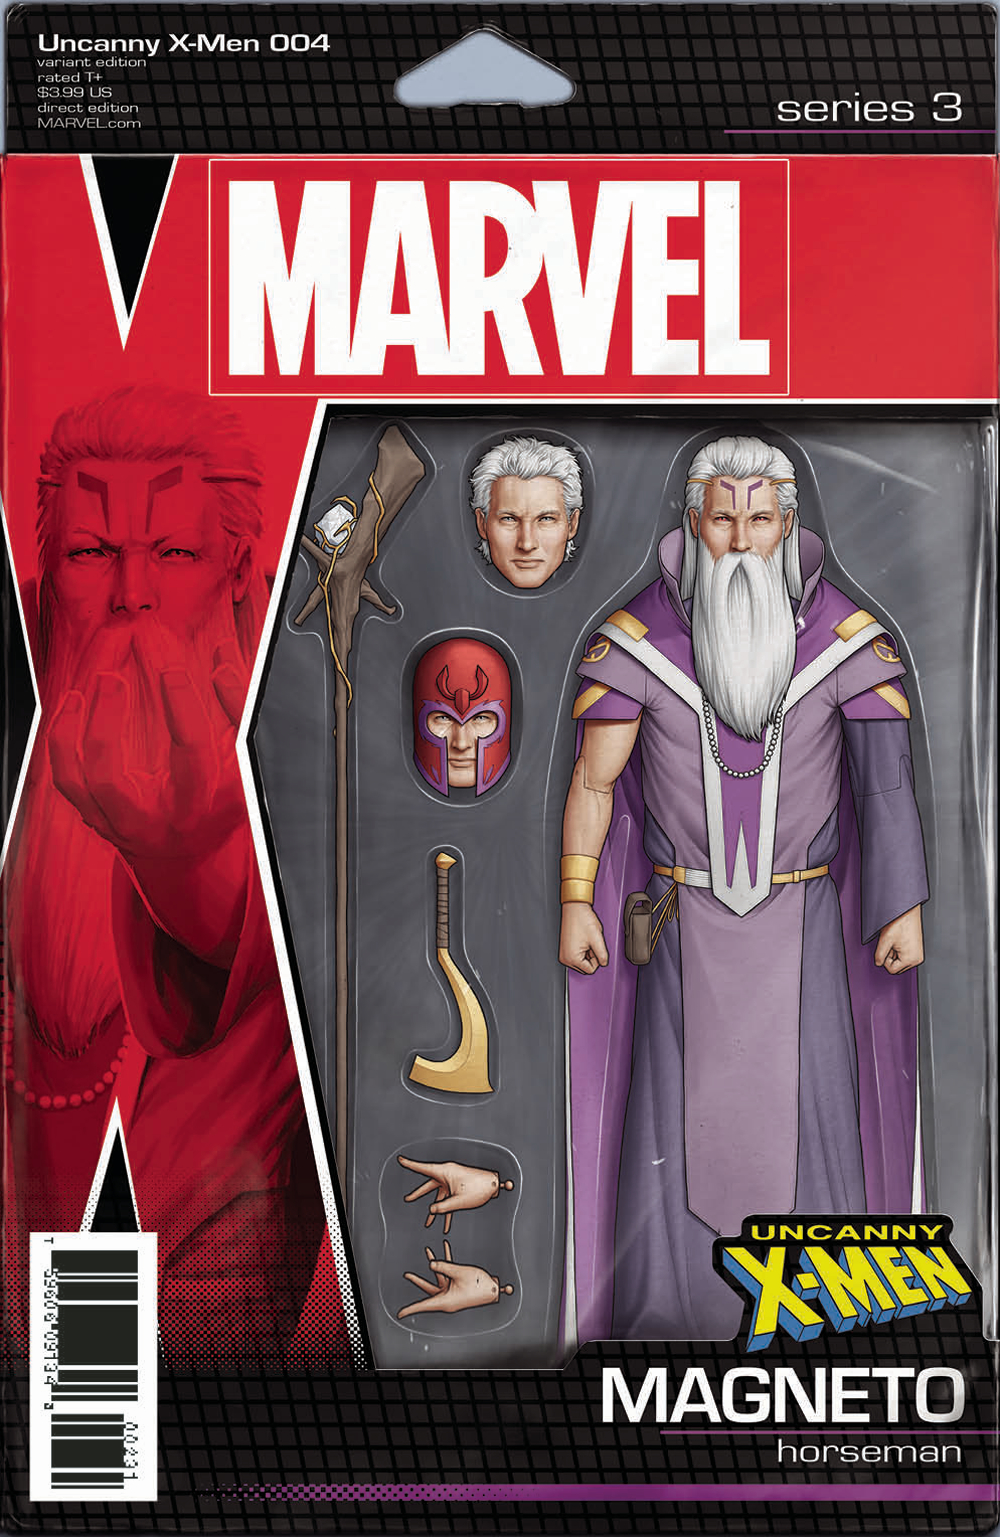 UNCANNY X-MEN #4 CHRISTOPHER ACTION FIGURE VAR